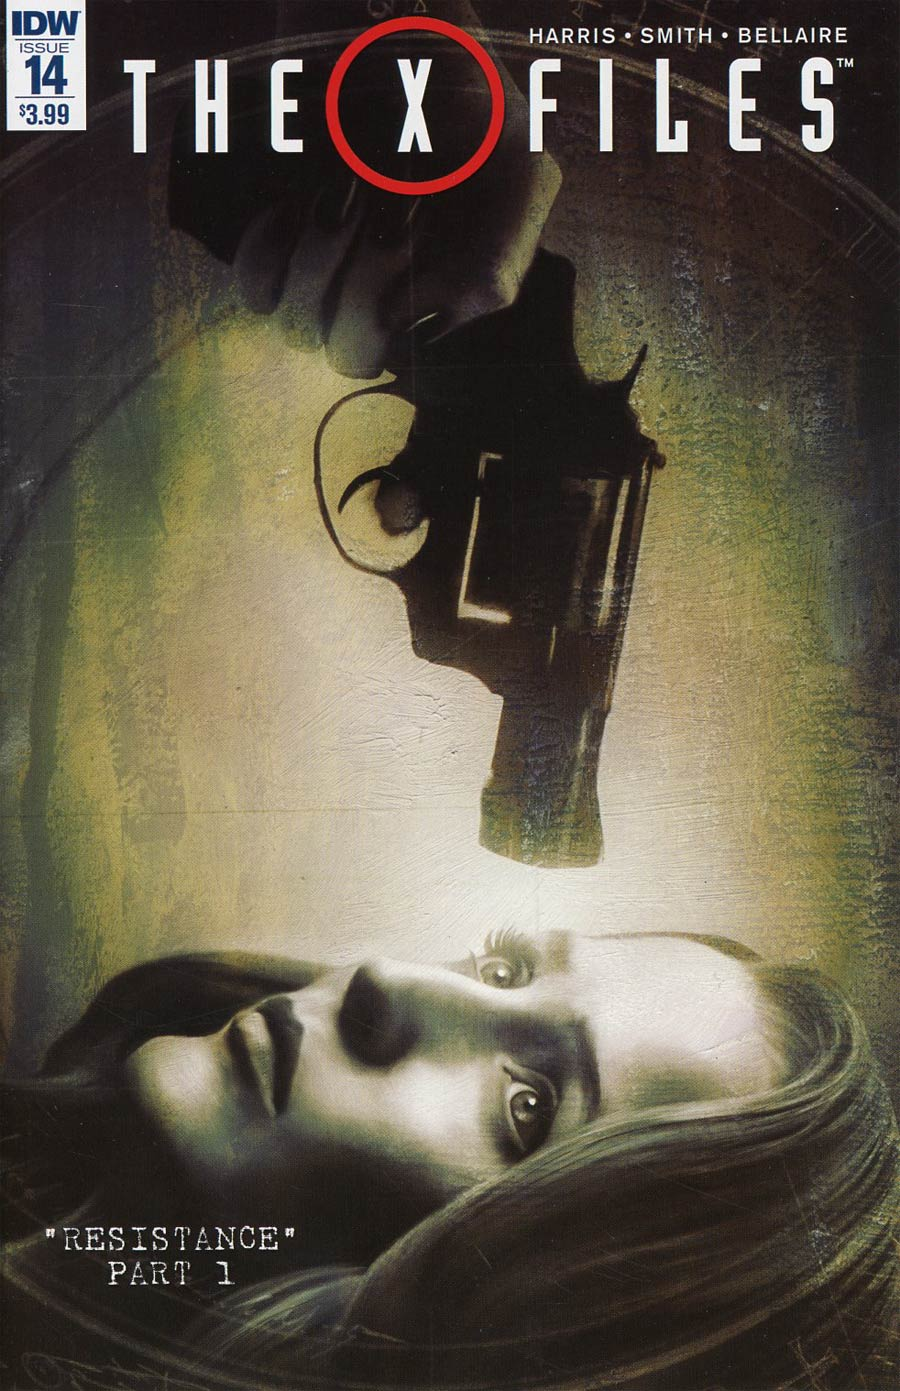 X-Files Vol 3 #14 Cover A Regular Menton3 Cover